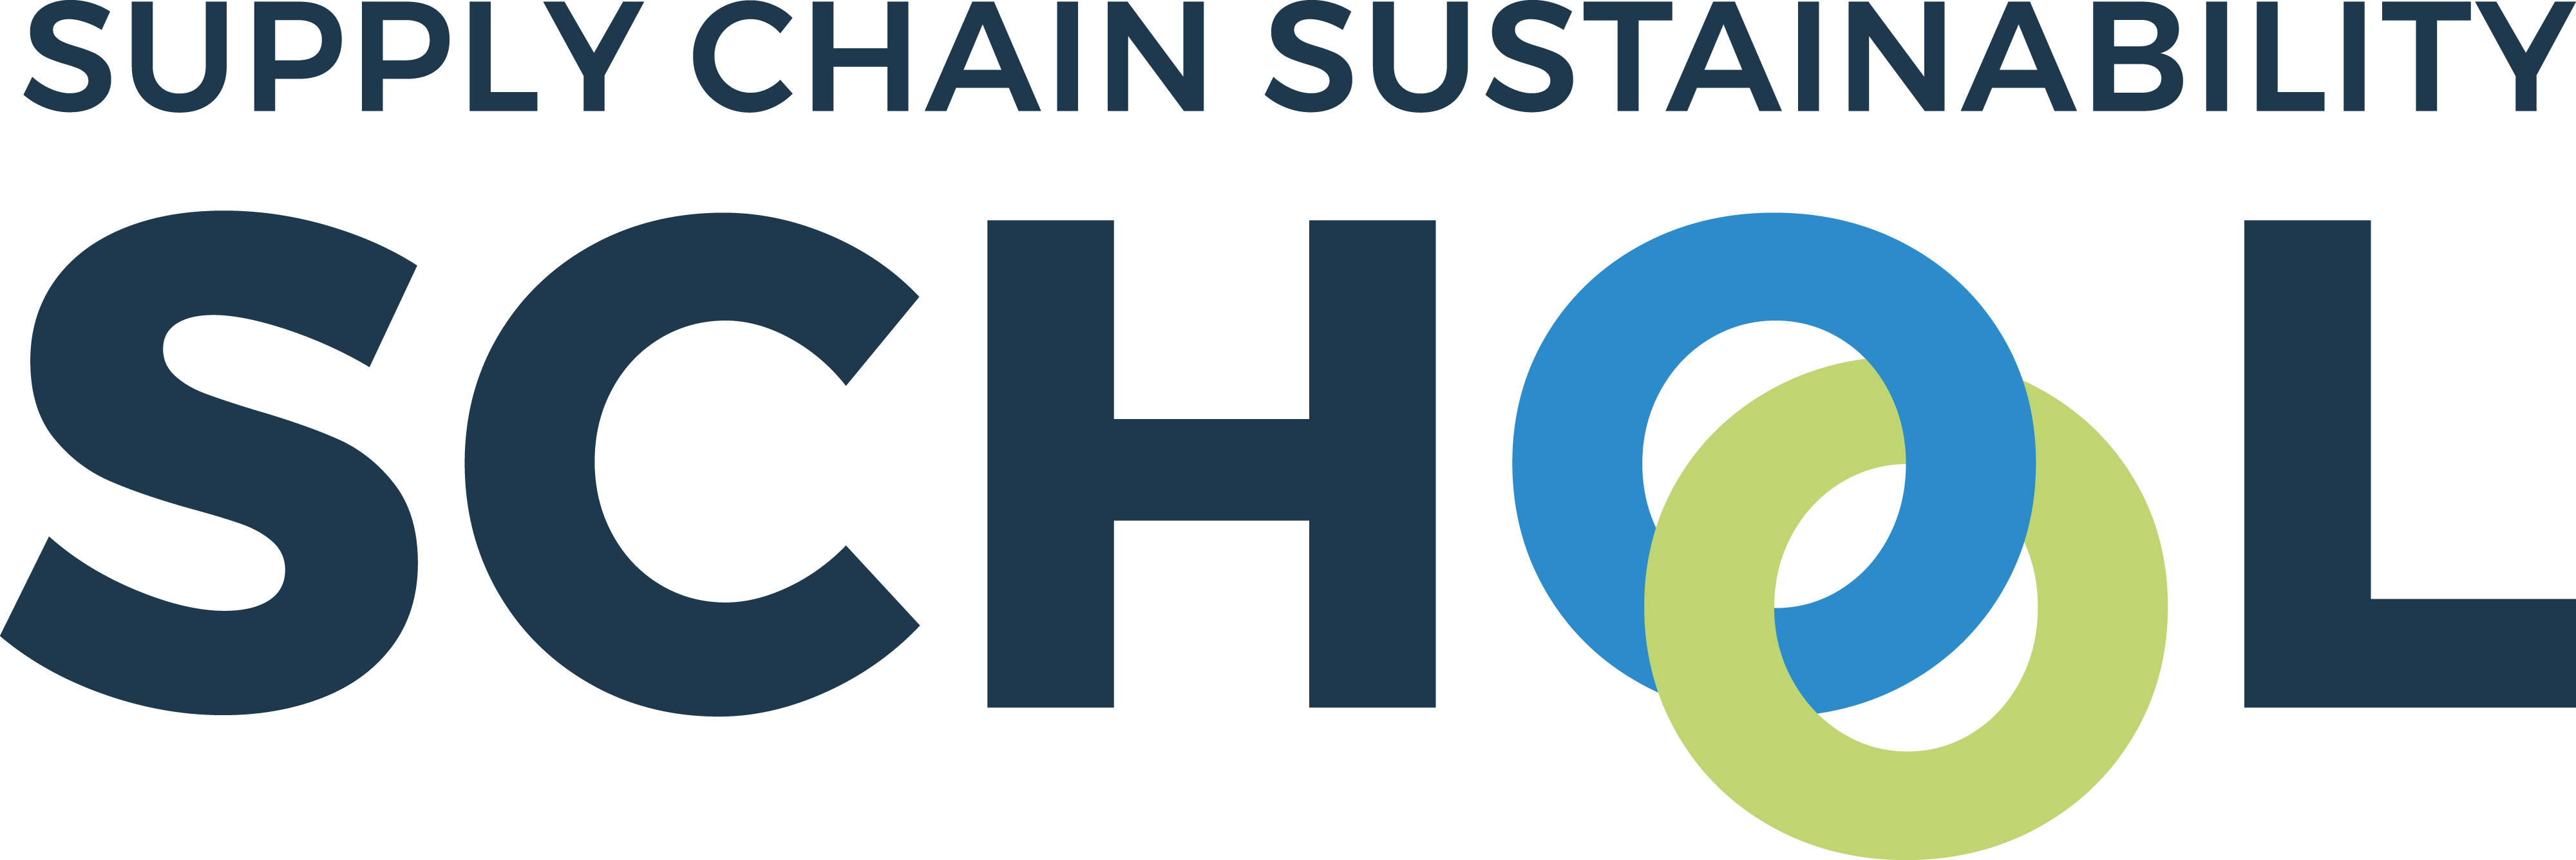 Image of scss logo RGB in Cosentino Awarded Gold Status by Supply Chain Sustainability School - Cosentino